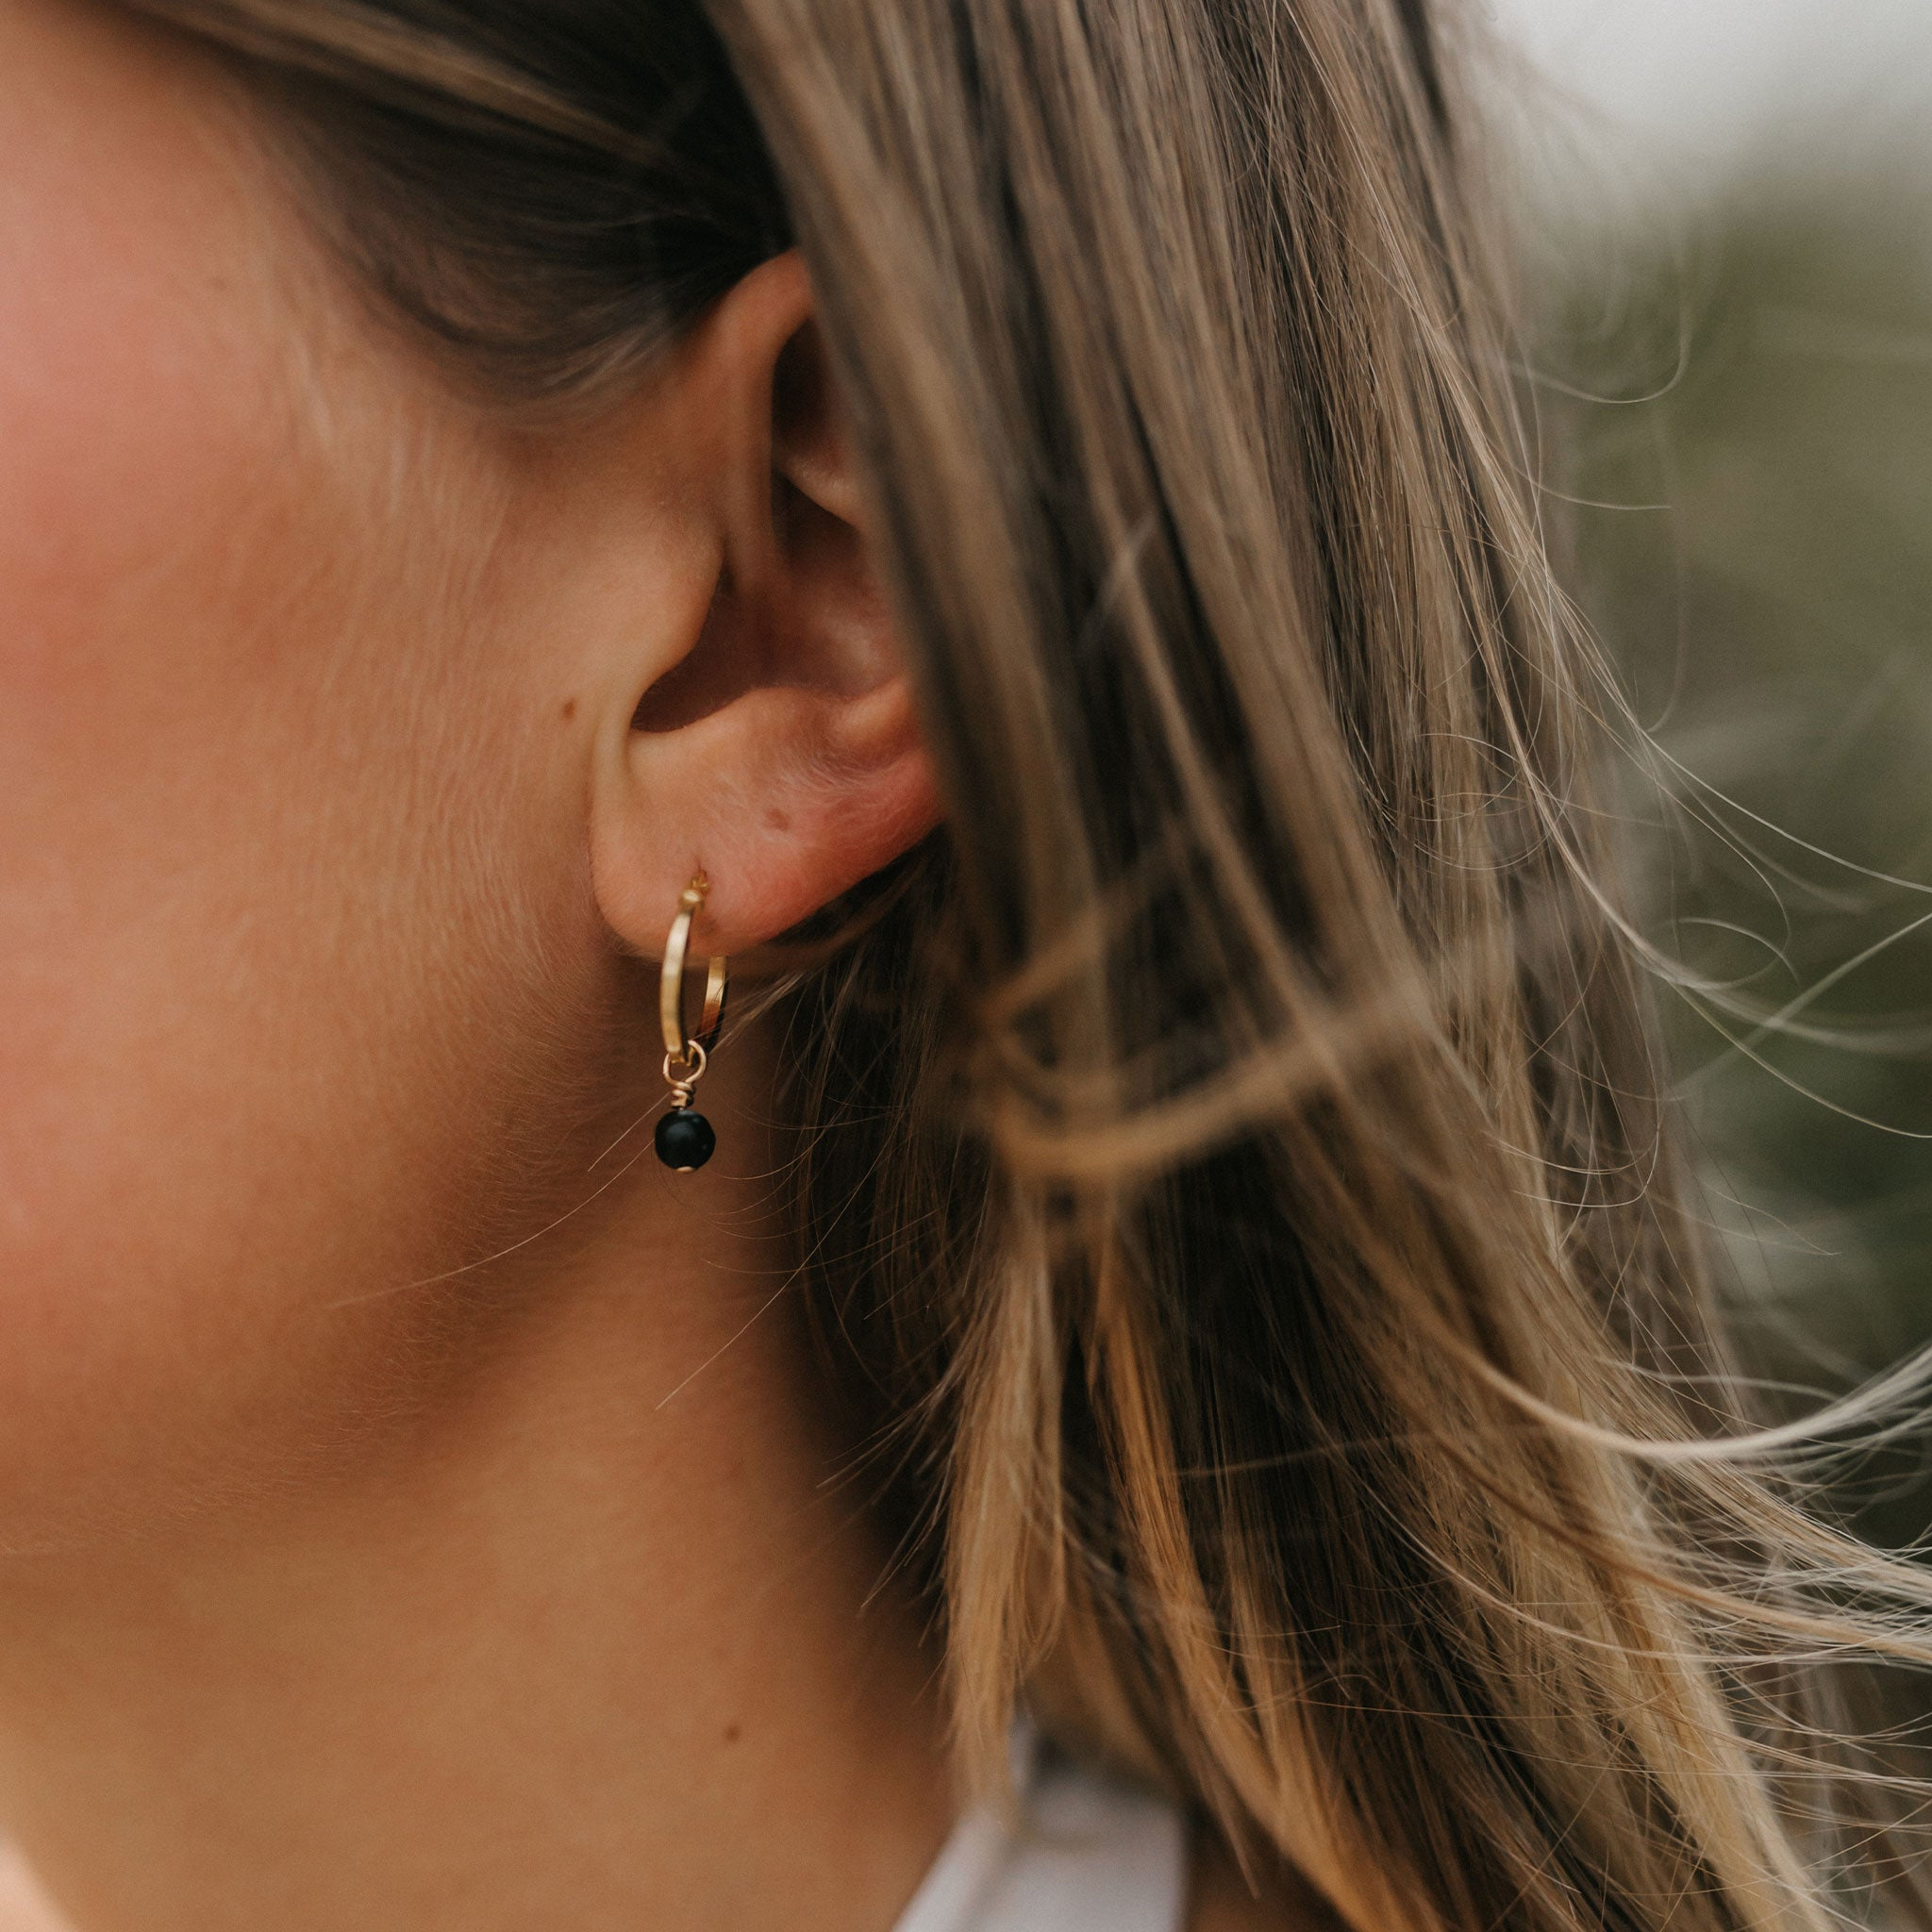 Wanderlust Life jewellery, 14k gold fill creole hoop earrings with semi precious black obsidian gemstone. Wanderlust Life jewellery handmade in Devon, UK.